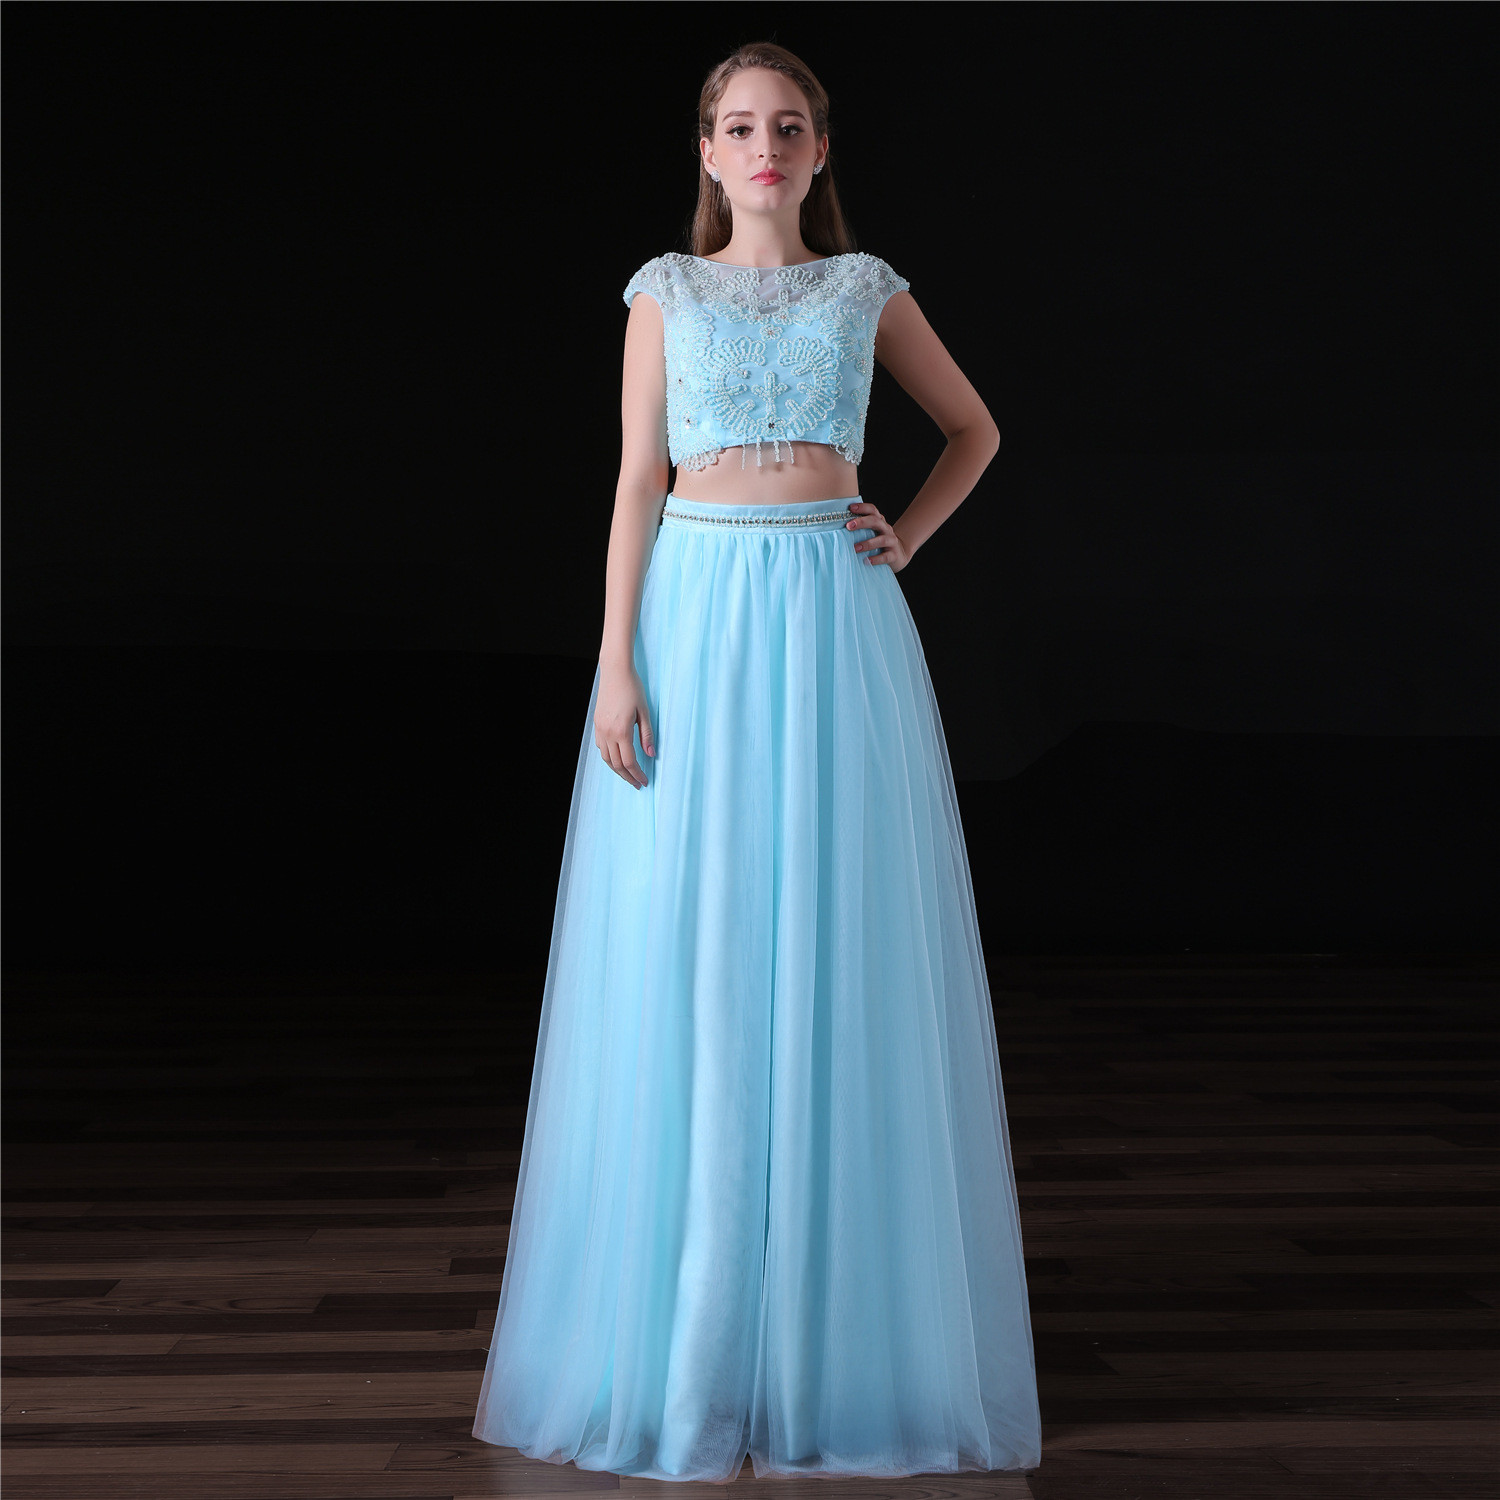 f51a0caab01d4 Light Blue Two Piece Prom Dress A Line Long Party Dress